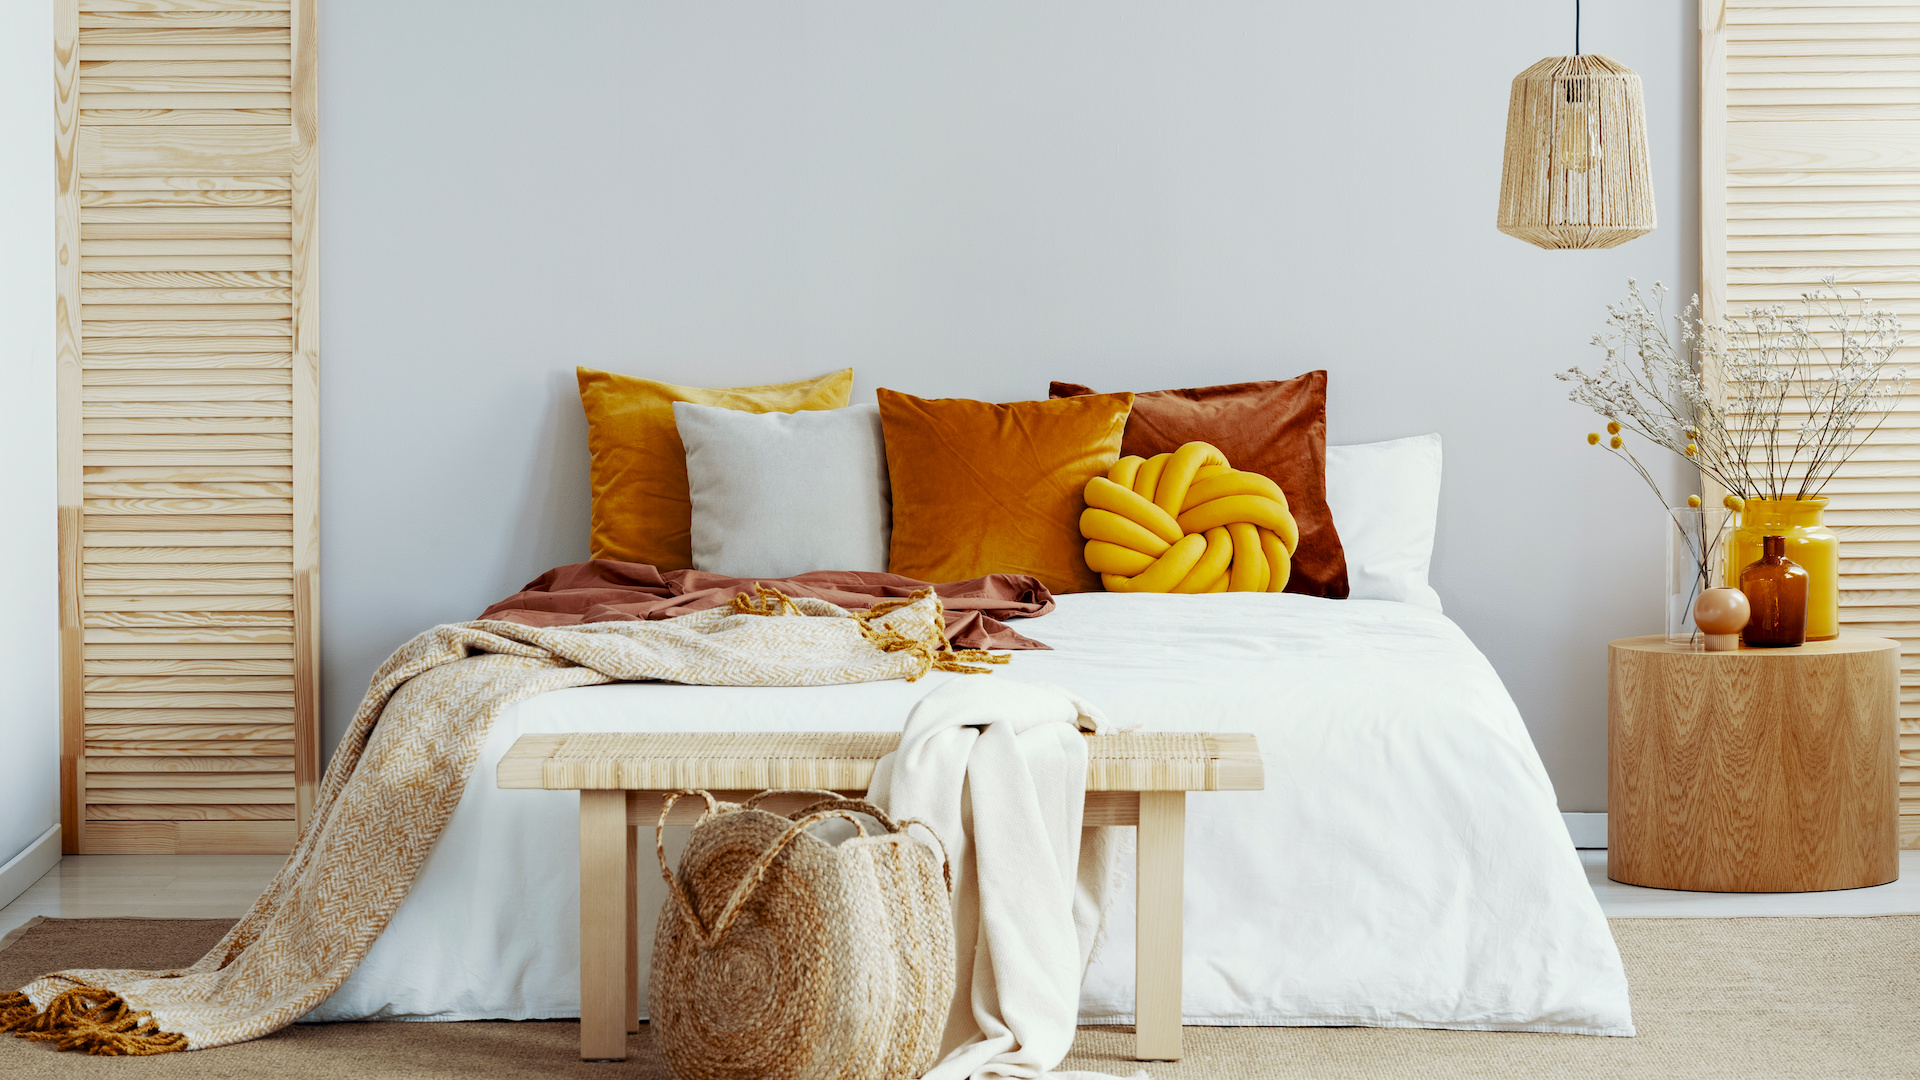 20 Easy Home Decor Ideas To Make Your Space Feel New Again